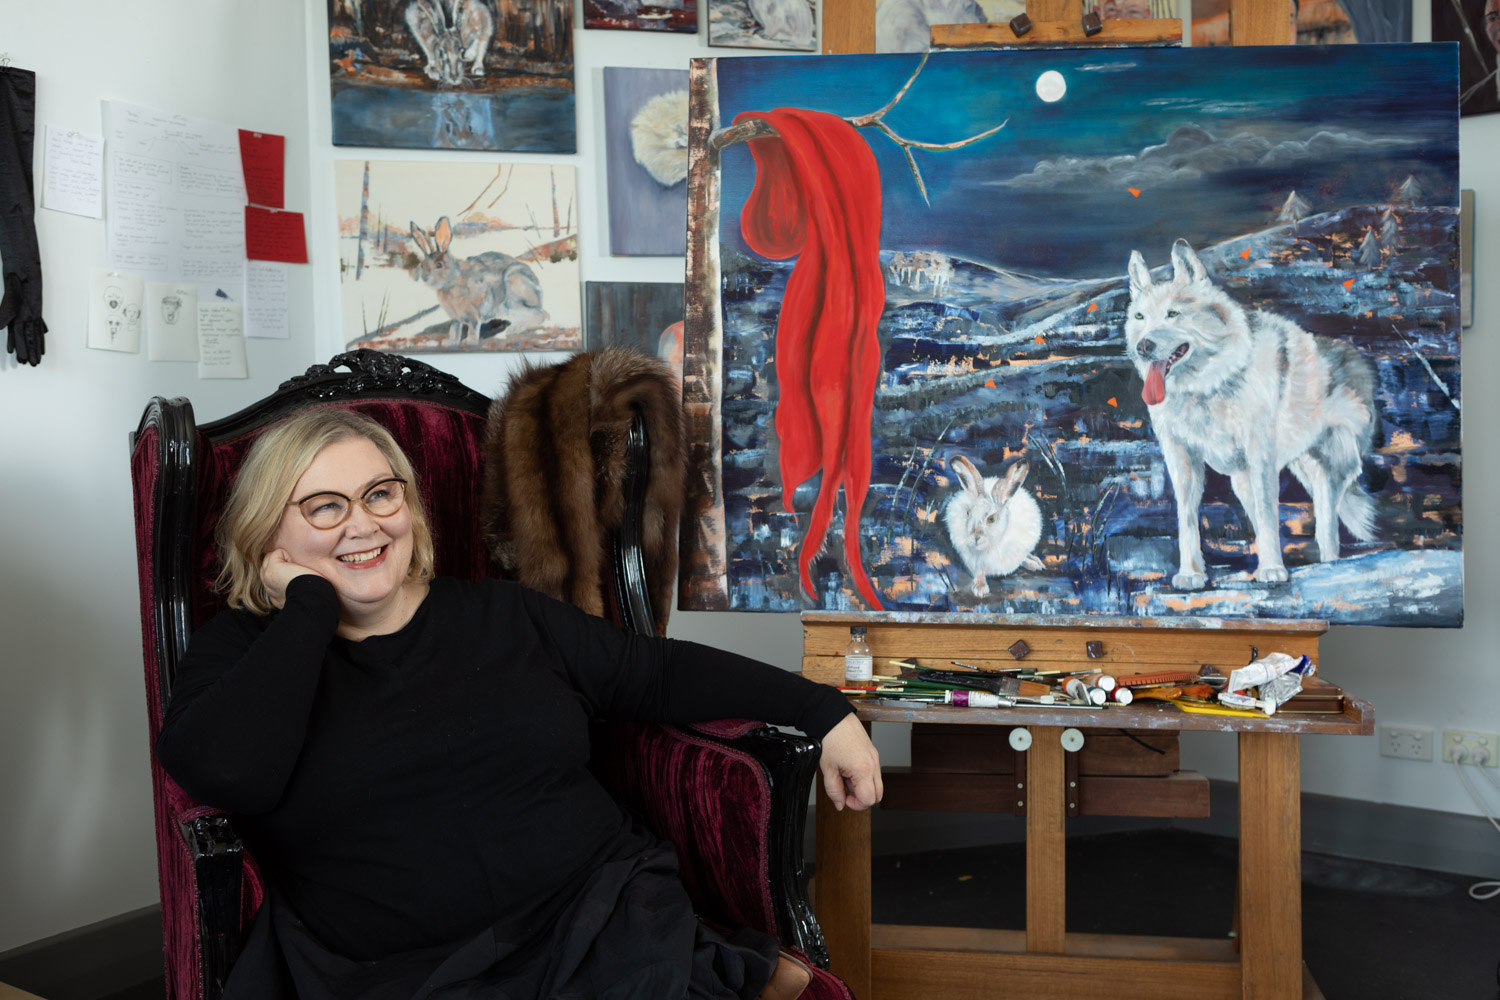 Janice Gobey in her studio - thanks to David Patston for the image